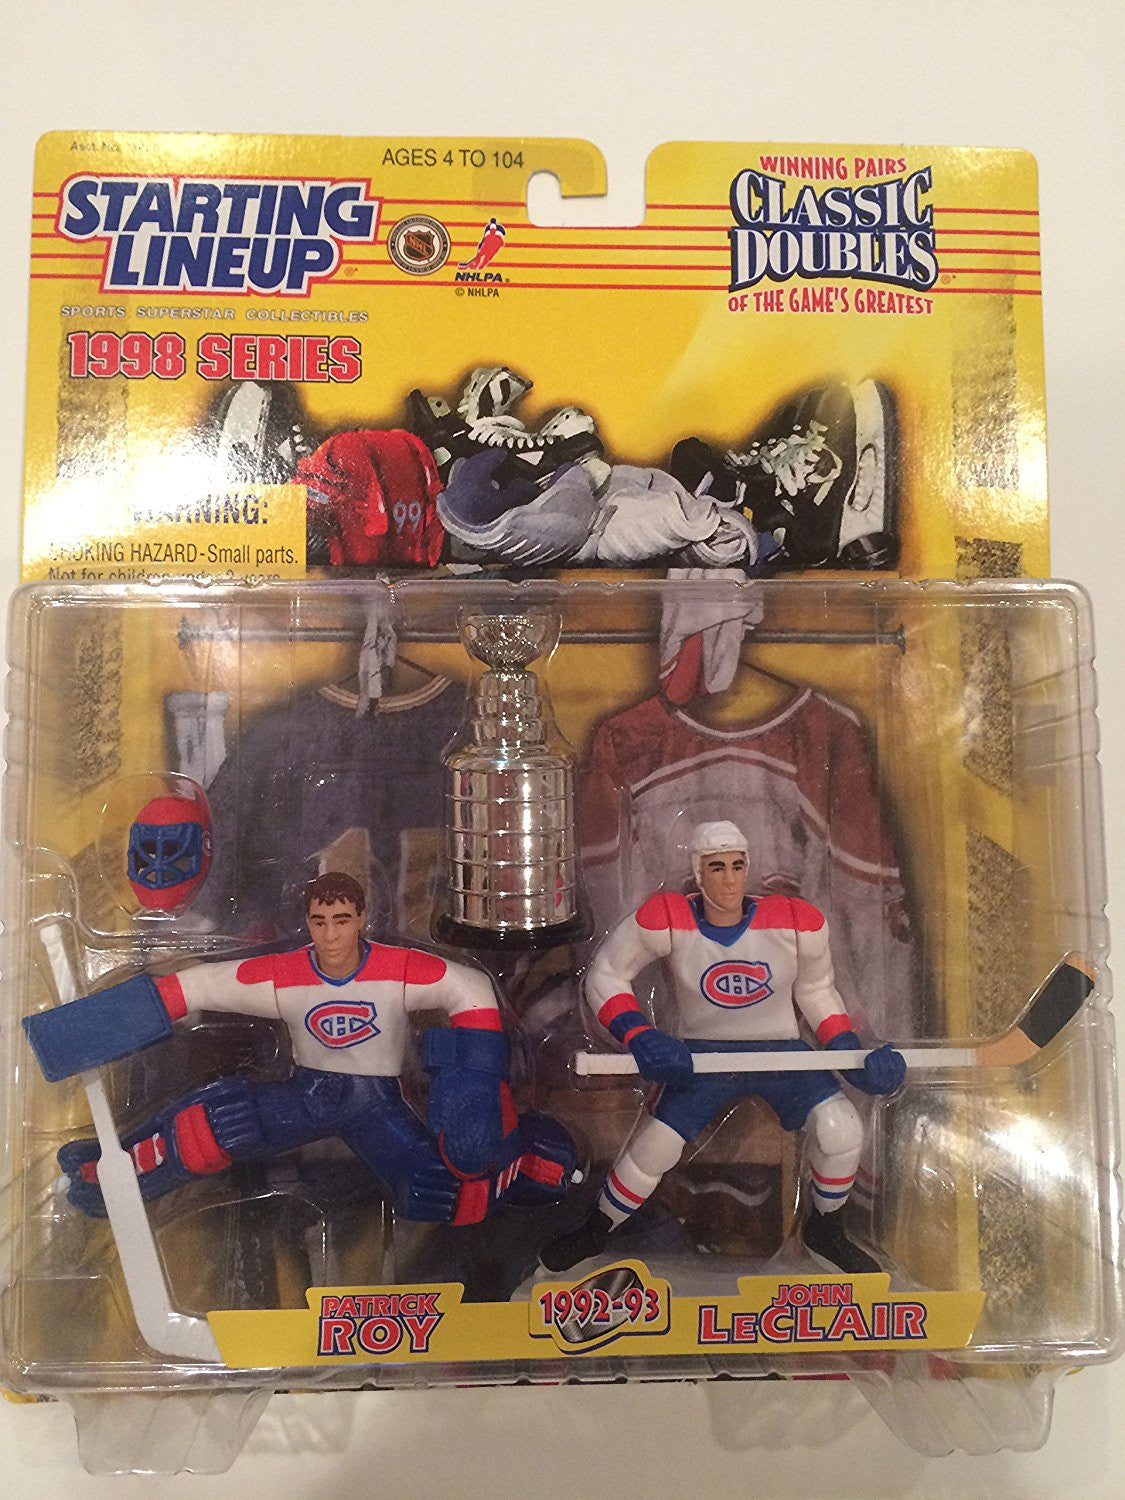 1998 Patrick Roy and John LeClair NHL Hockey Classic Doubles Starting Lineup Figures by Starting Line Up